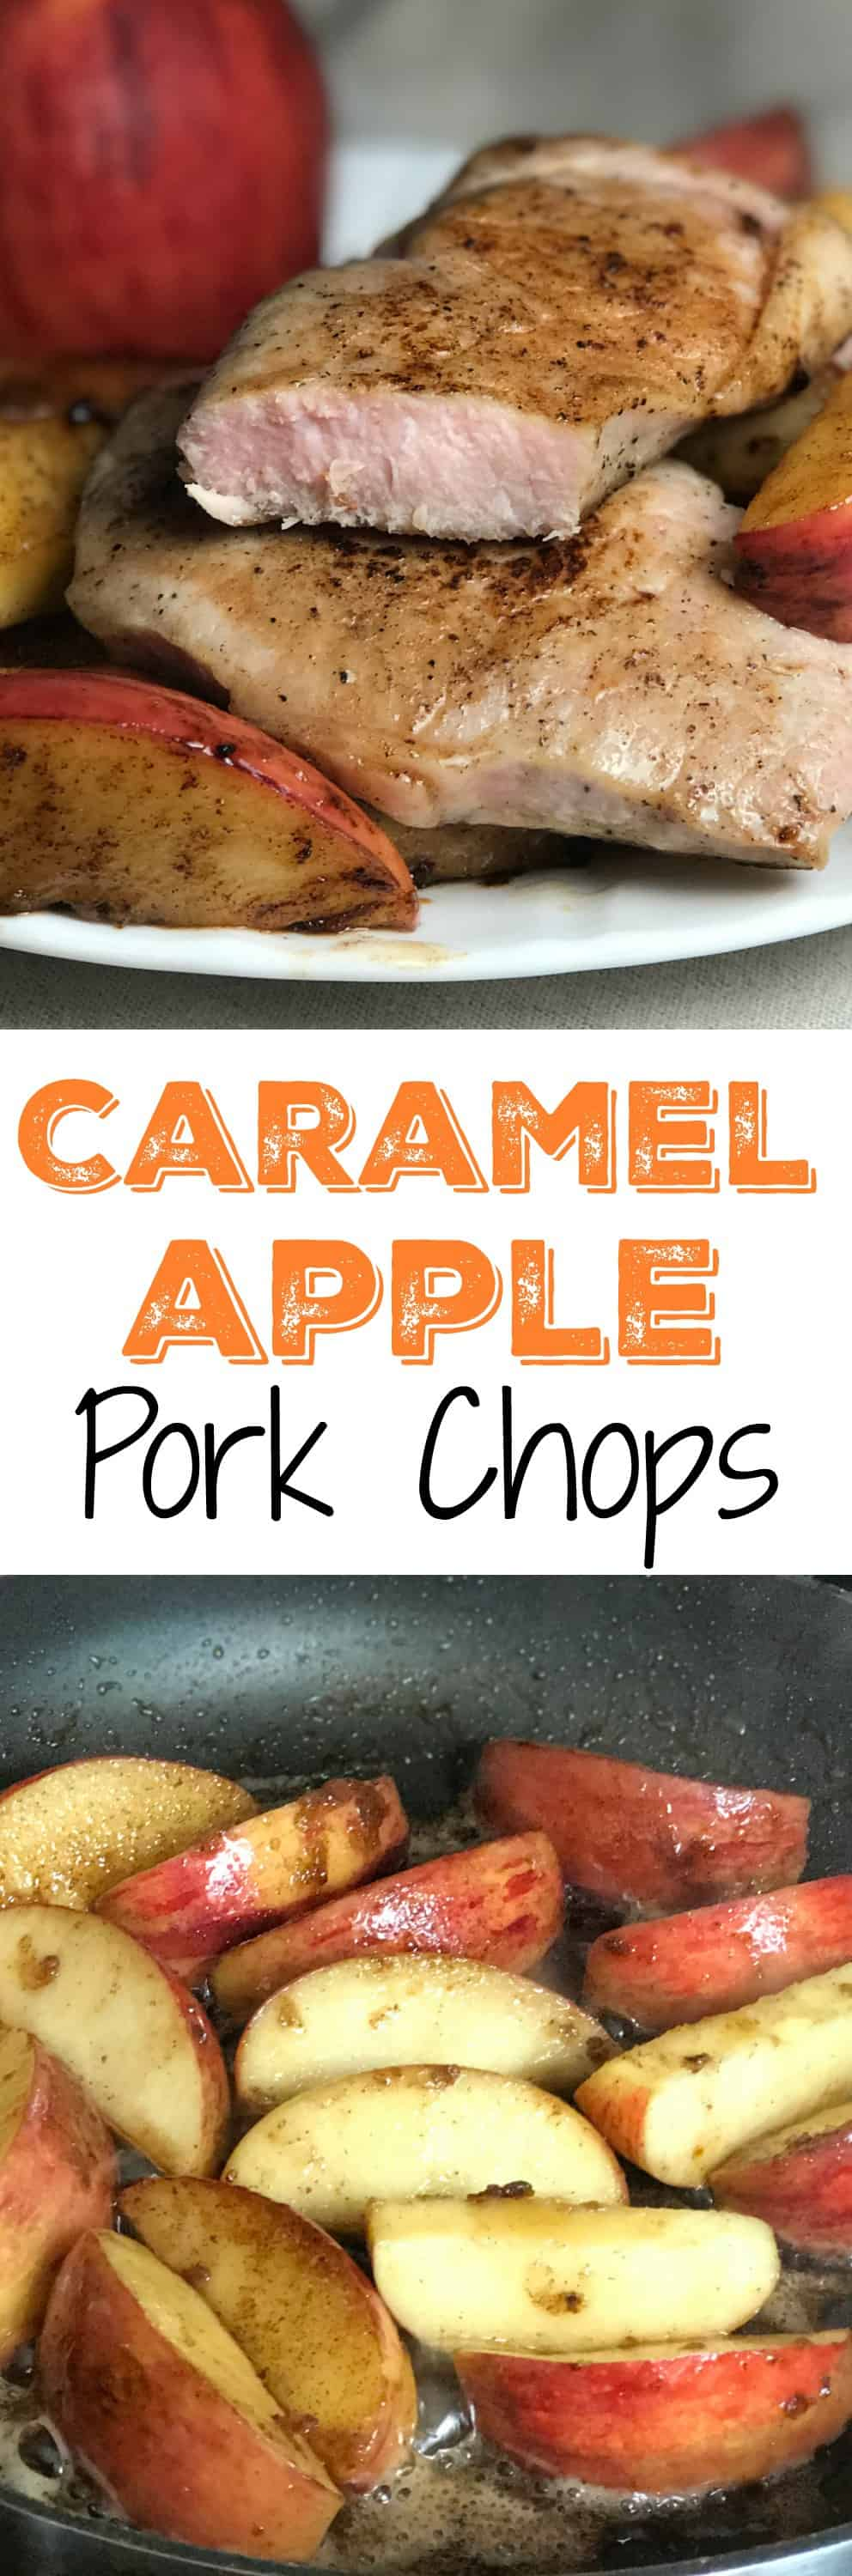 Collage of caramelized apple pork chops and apples with text